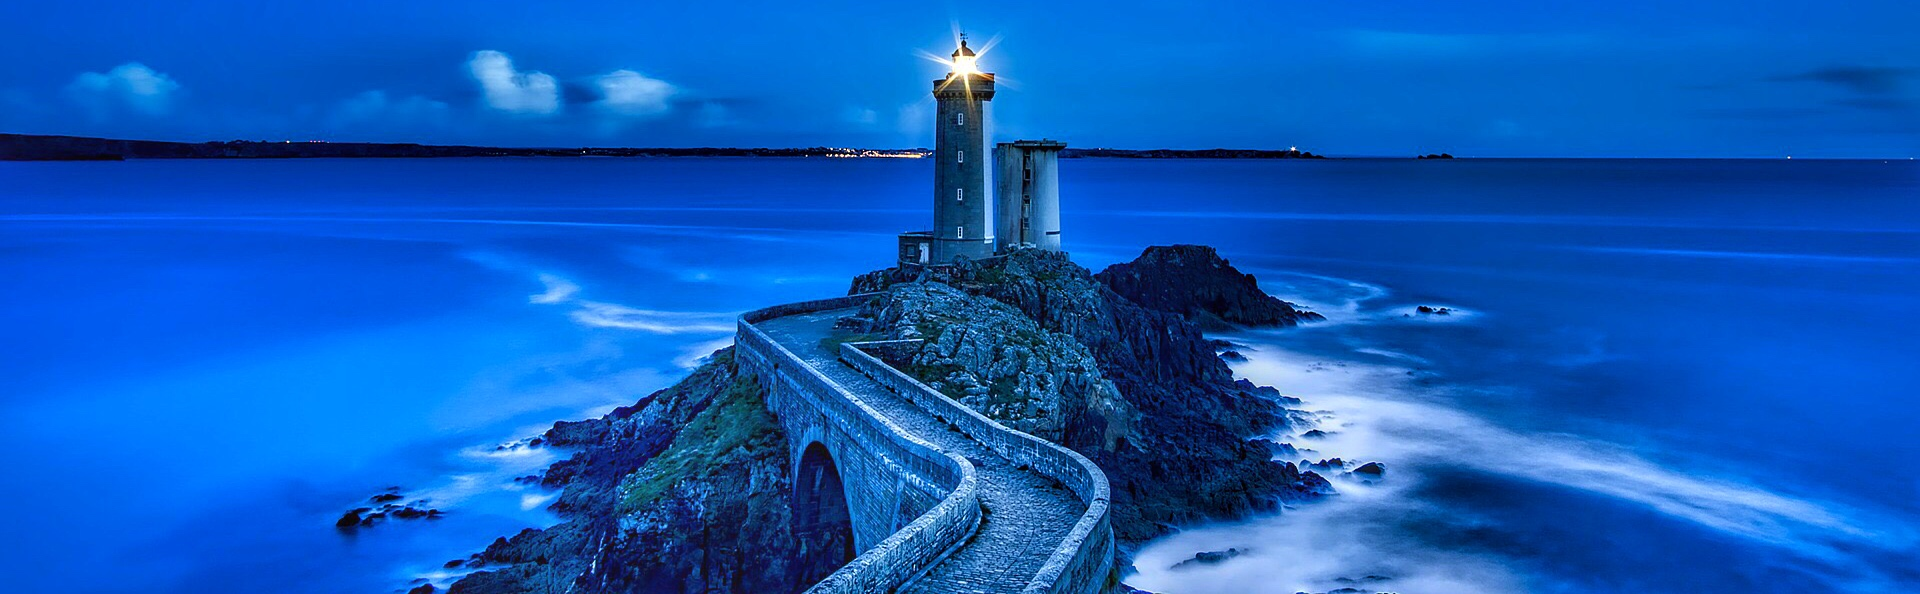 Blue panorama with lighthouse